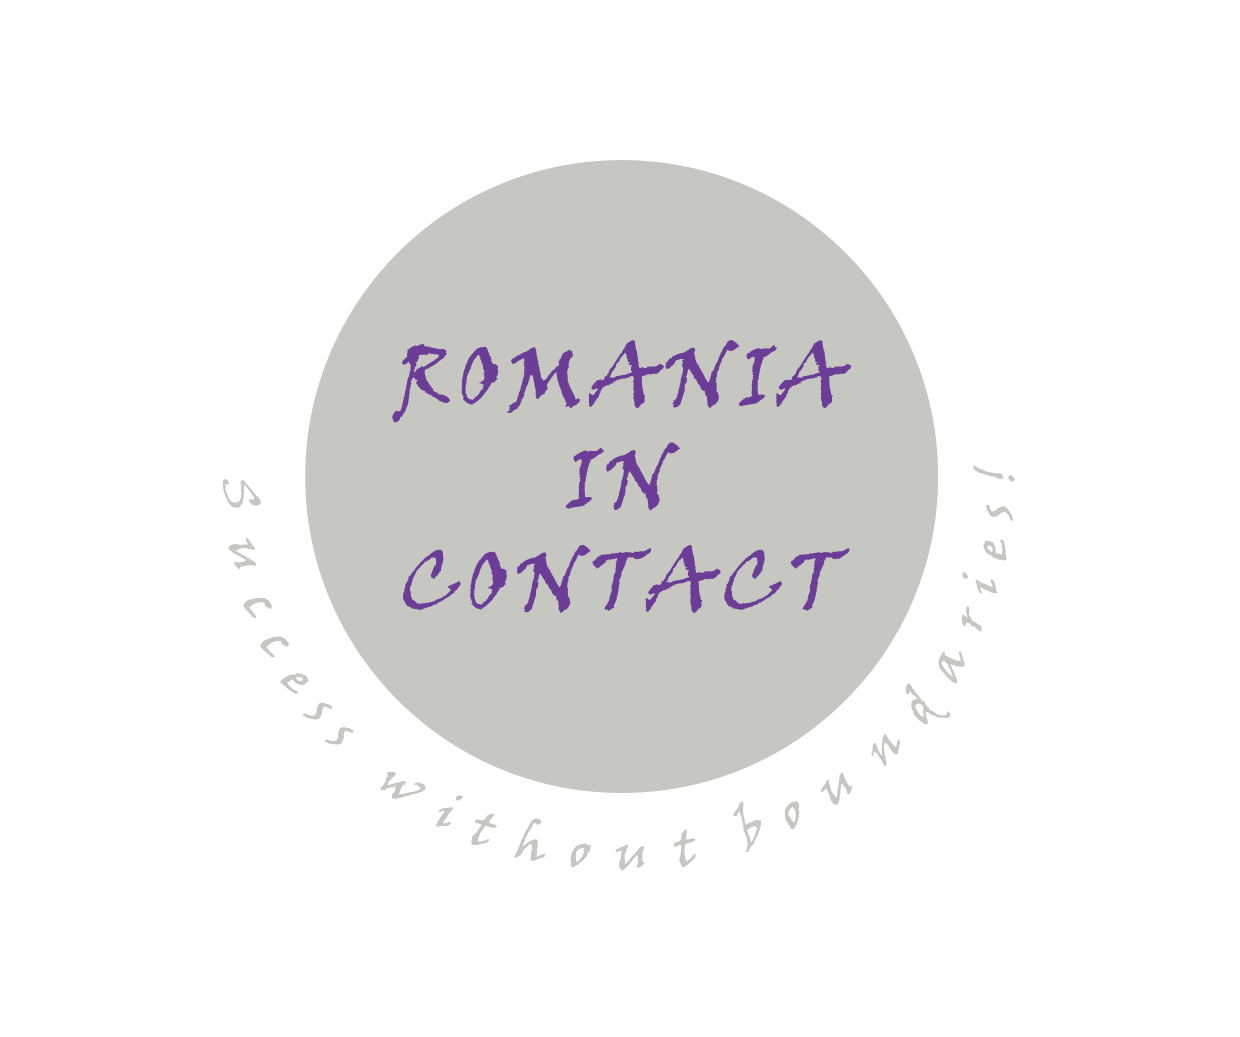 ROMANIA IN CONTACT Press